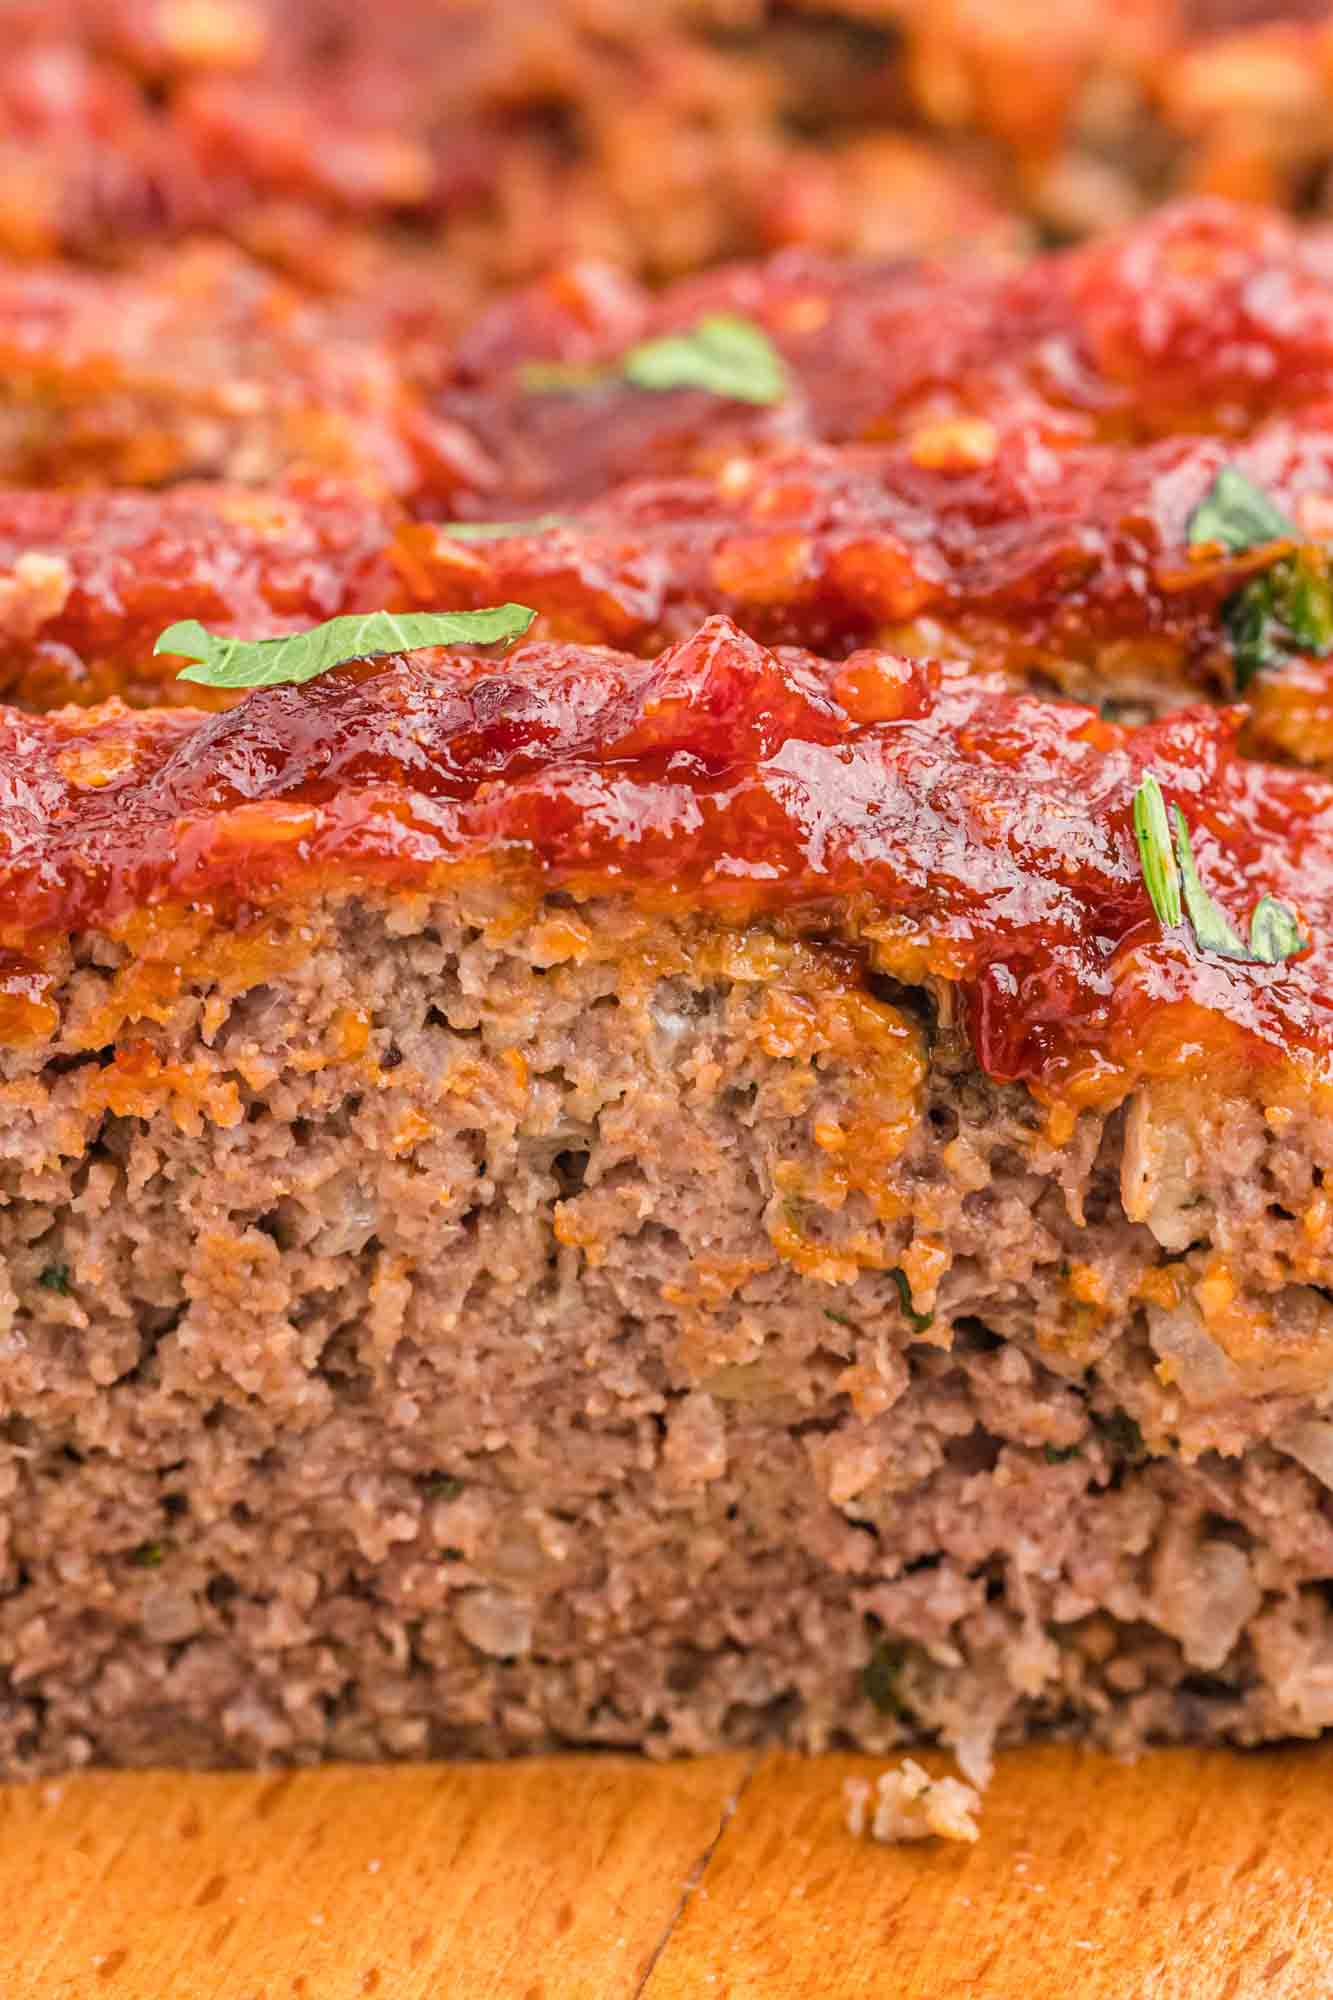 Close up shot of a meatloaf slice to show its texture